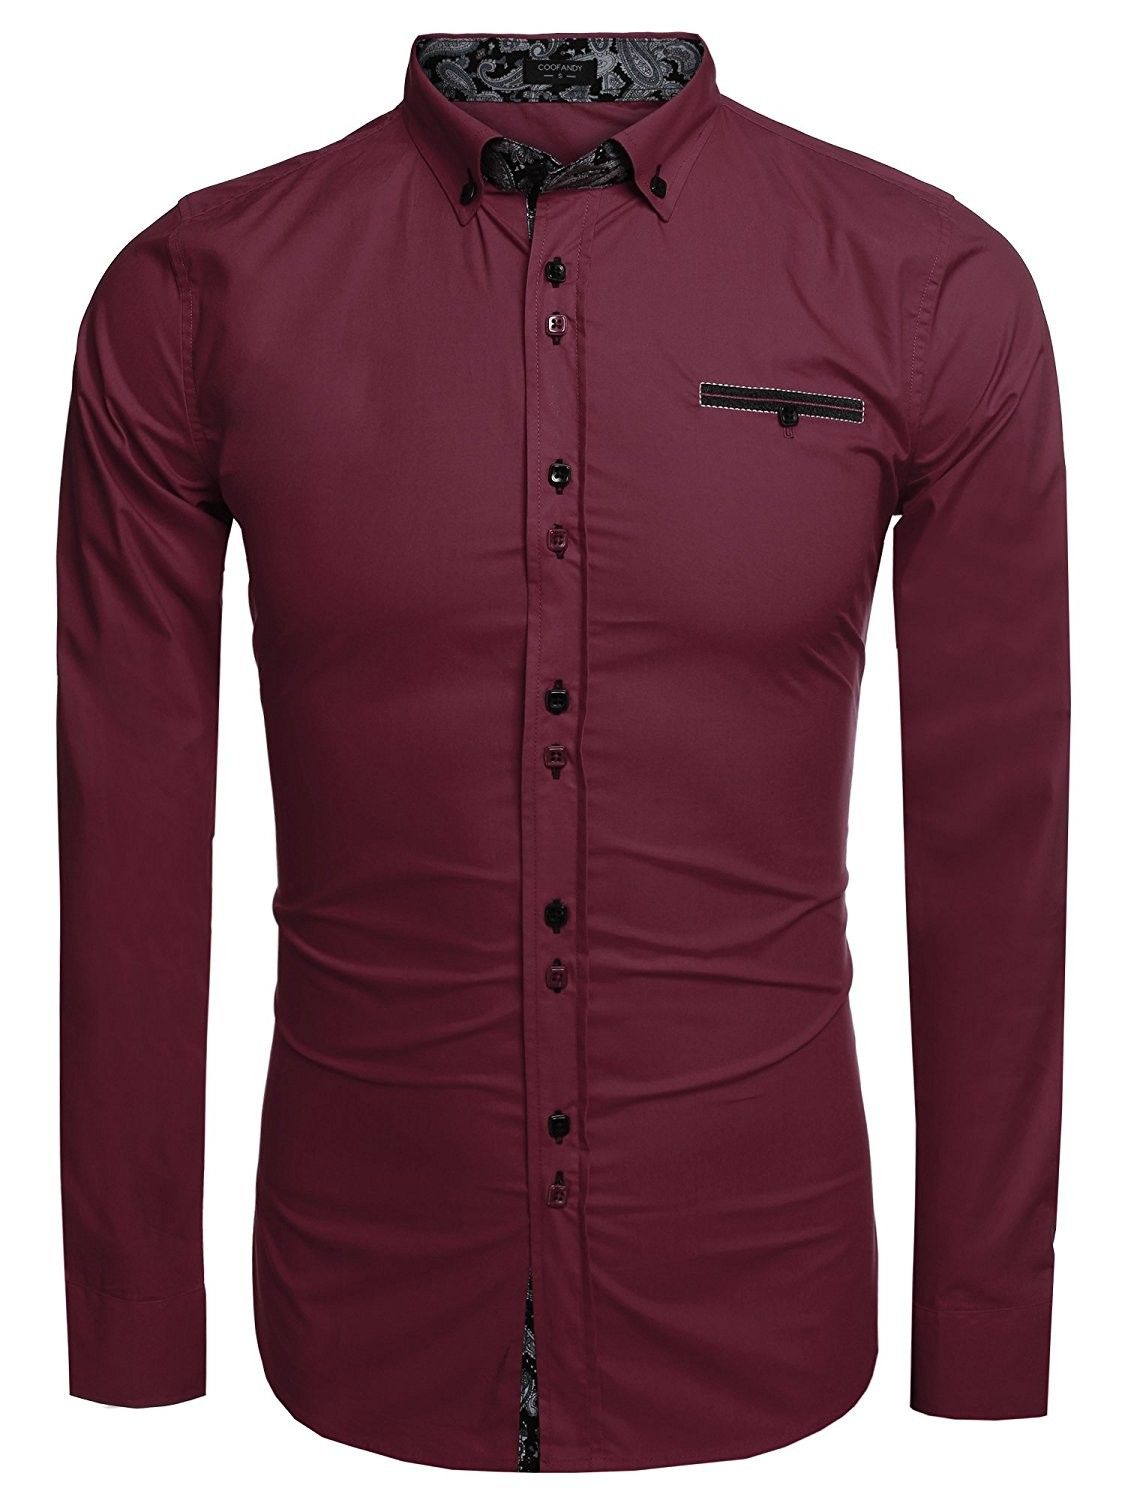 Men's Business Casual Long Sleeve Patchwork Shirt Slim Fit Button Down Dress Shirts  Wine Red  CF1876YMGU3 is part of Clothes Mens Buttons - Color Wine Red SKU CF1876YMGU3 Giftwrap Available